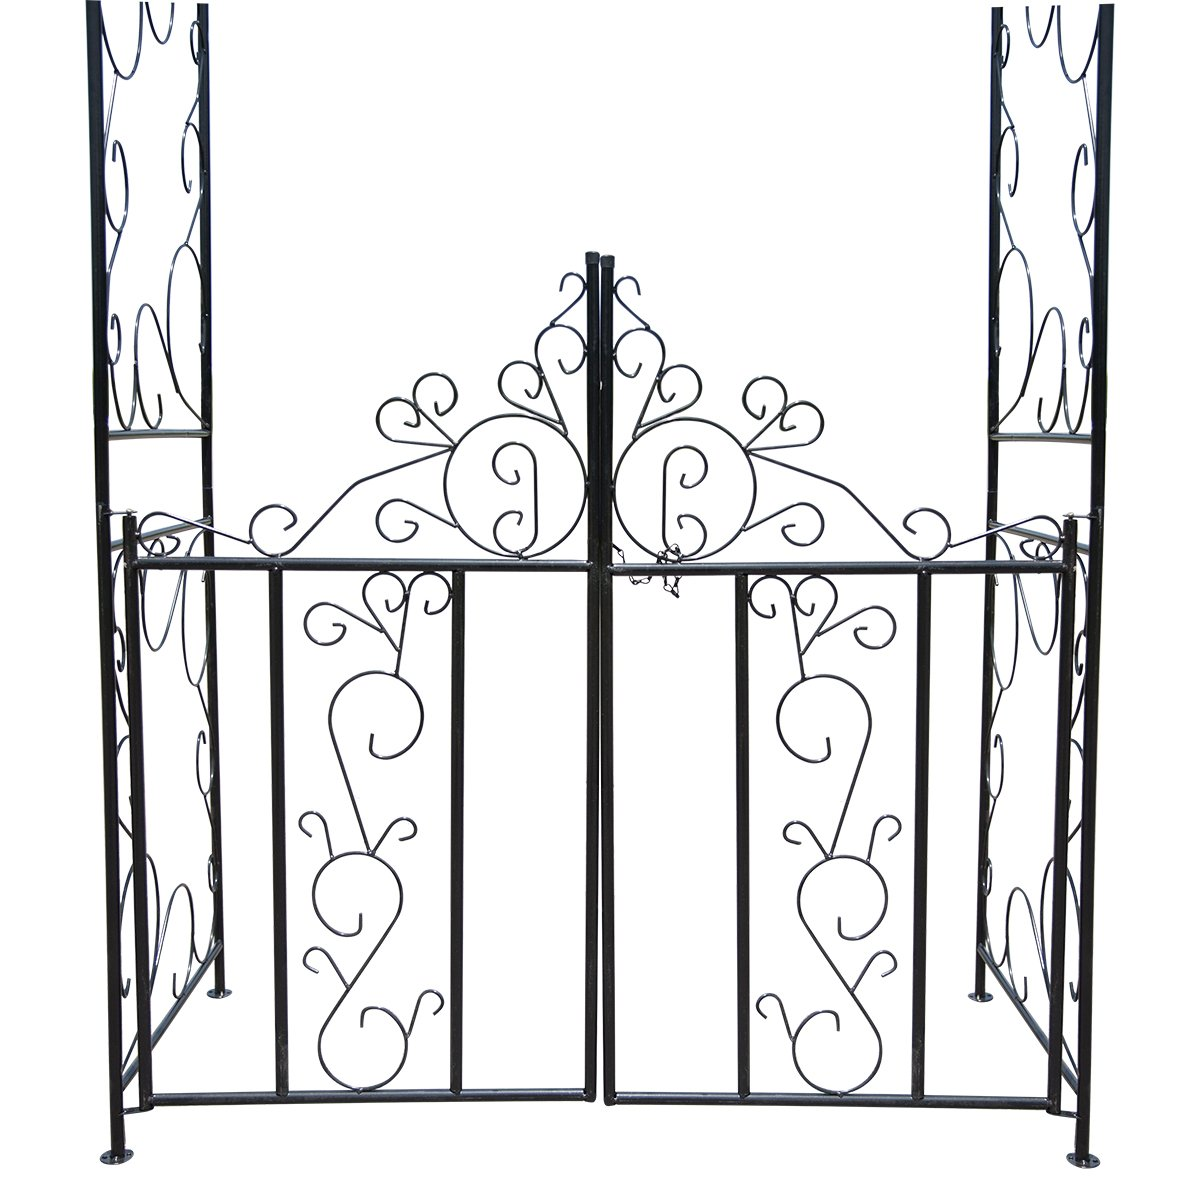 HollyHOME Decorative Metal Garden Arch with Gate, Perfect for Climbing Plant, Outdoor Lawn Yard, 72 High x 39 Wide